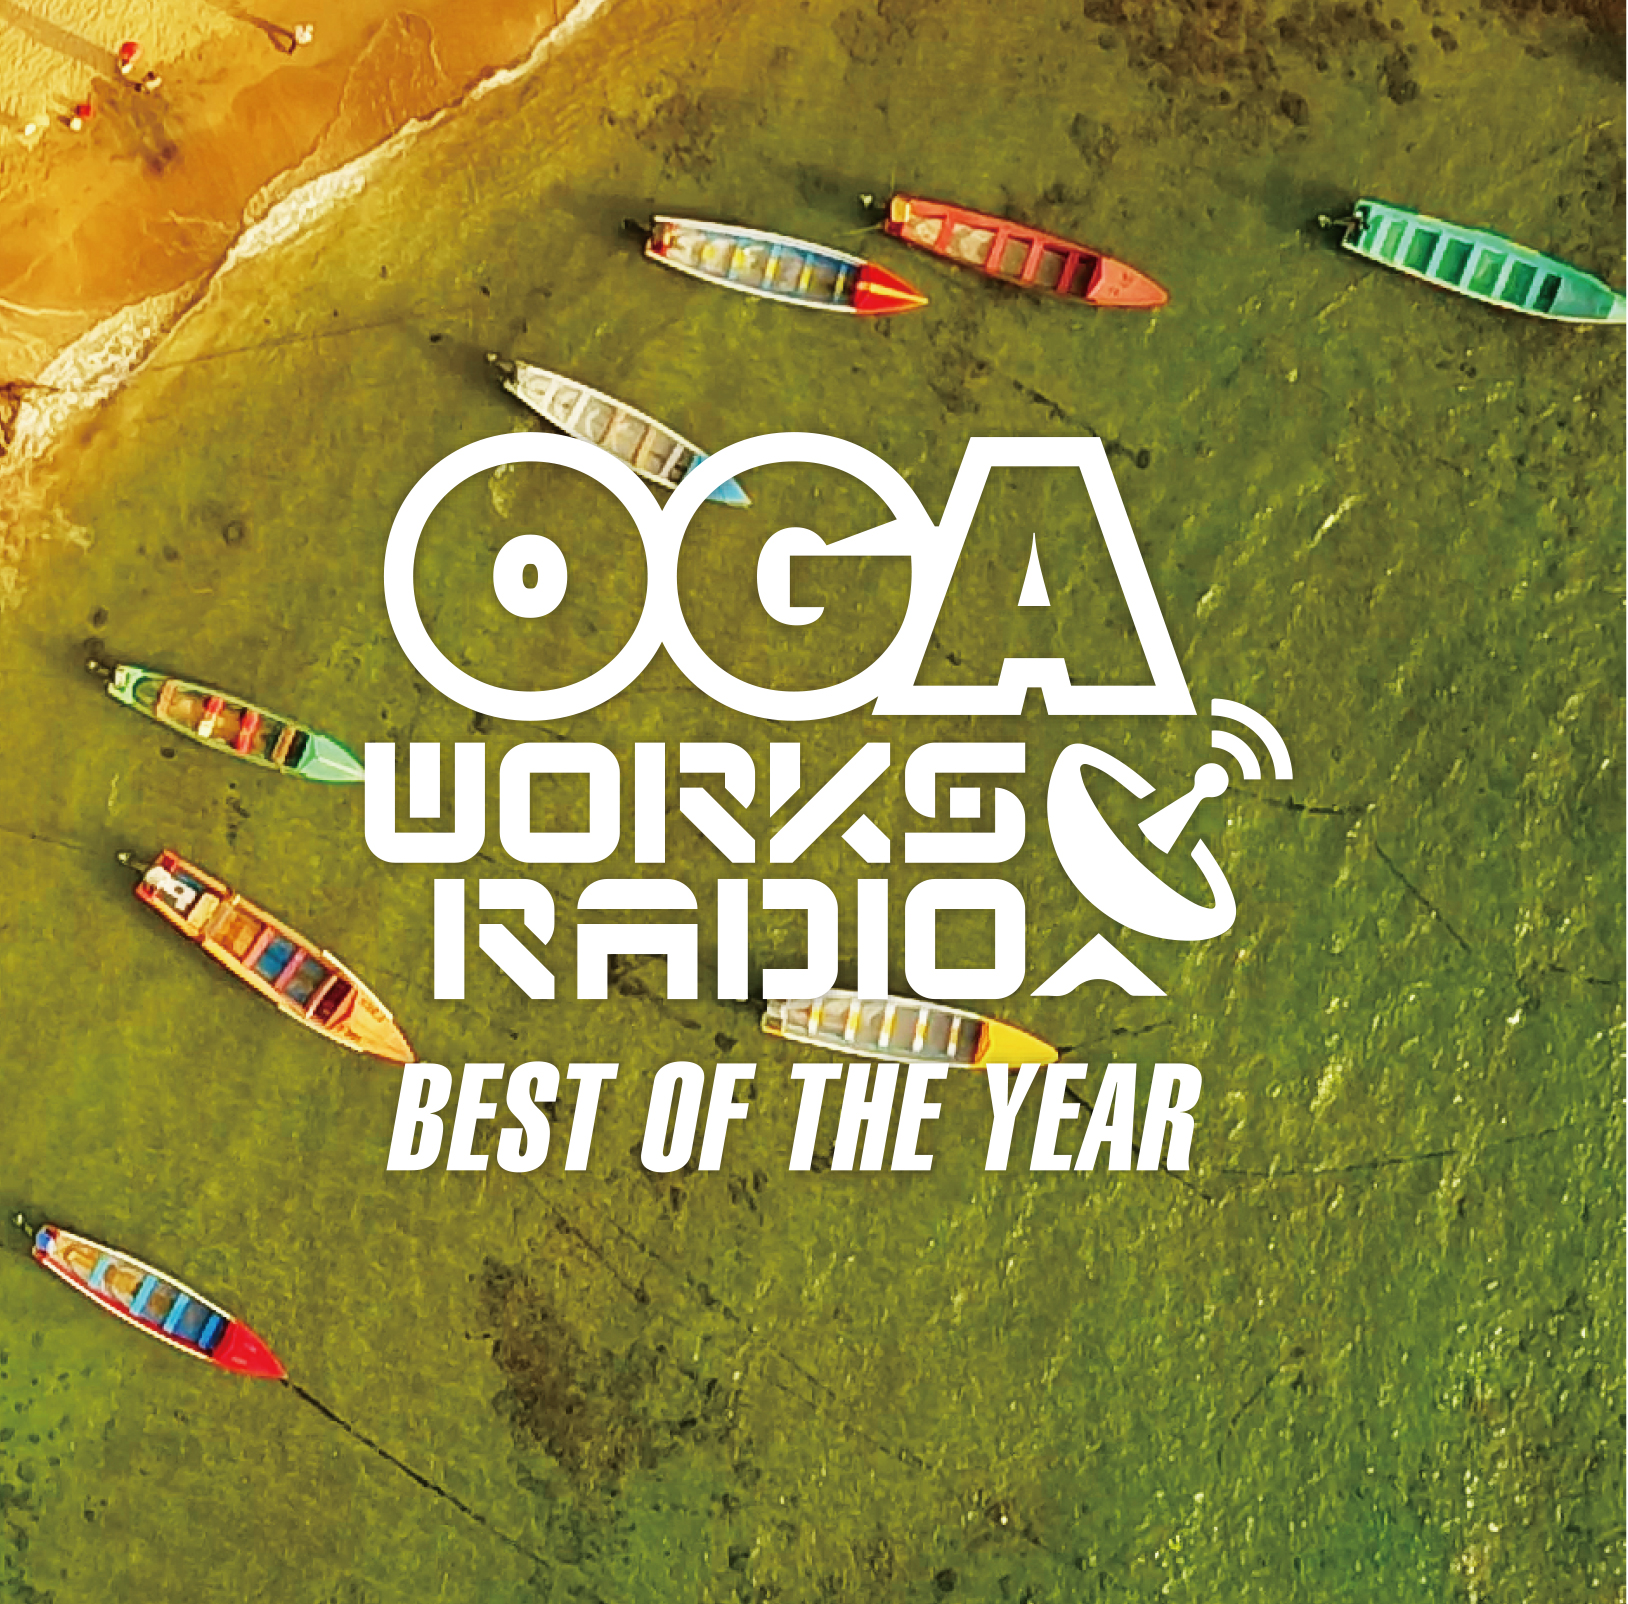 OGA from JAH WORKS / OGA WORKS RADIO MIX VOL.6 - BEST OF THE YEAR- 2017